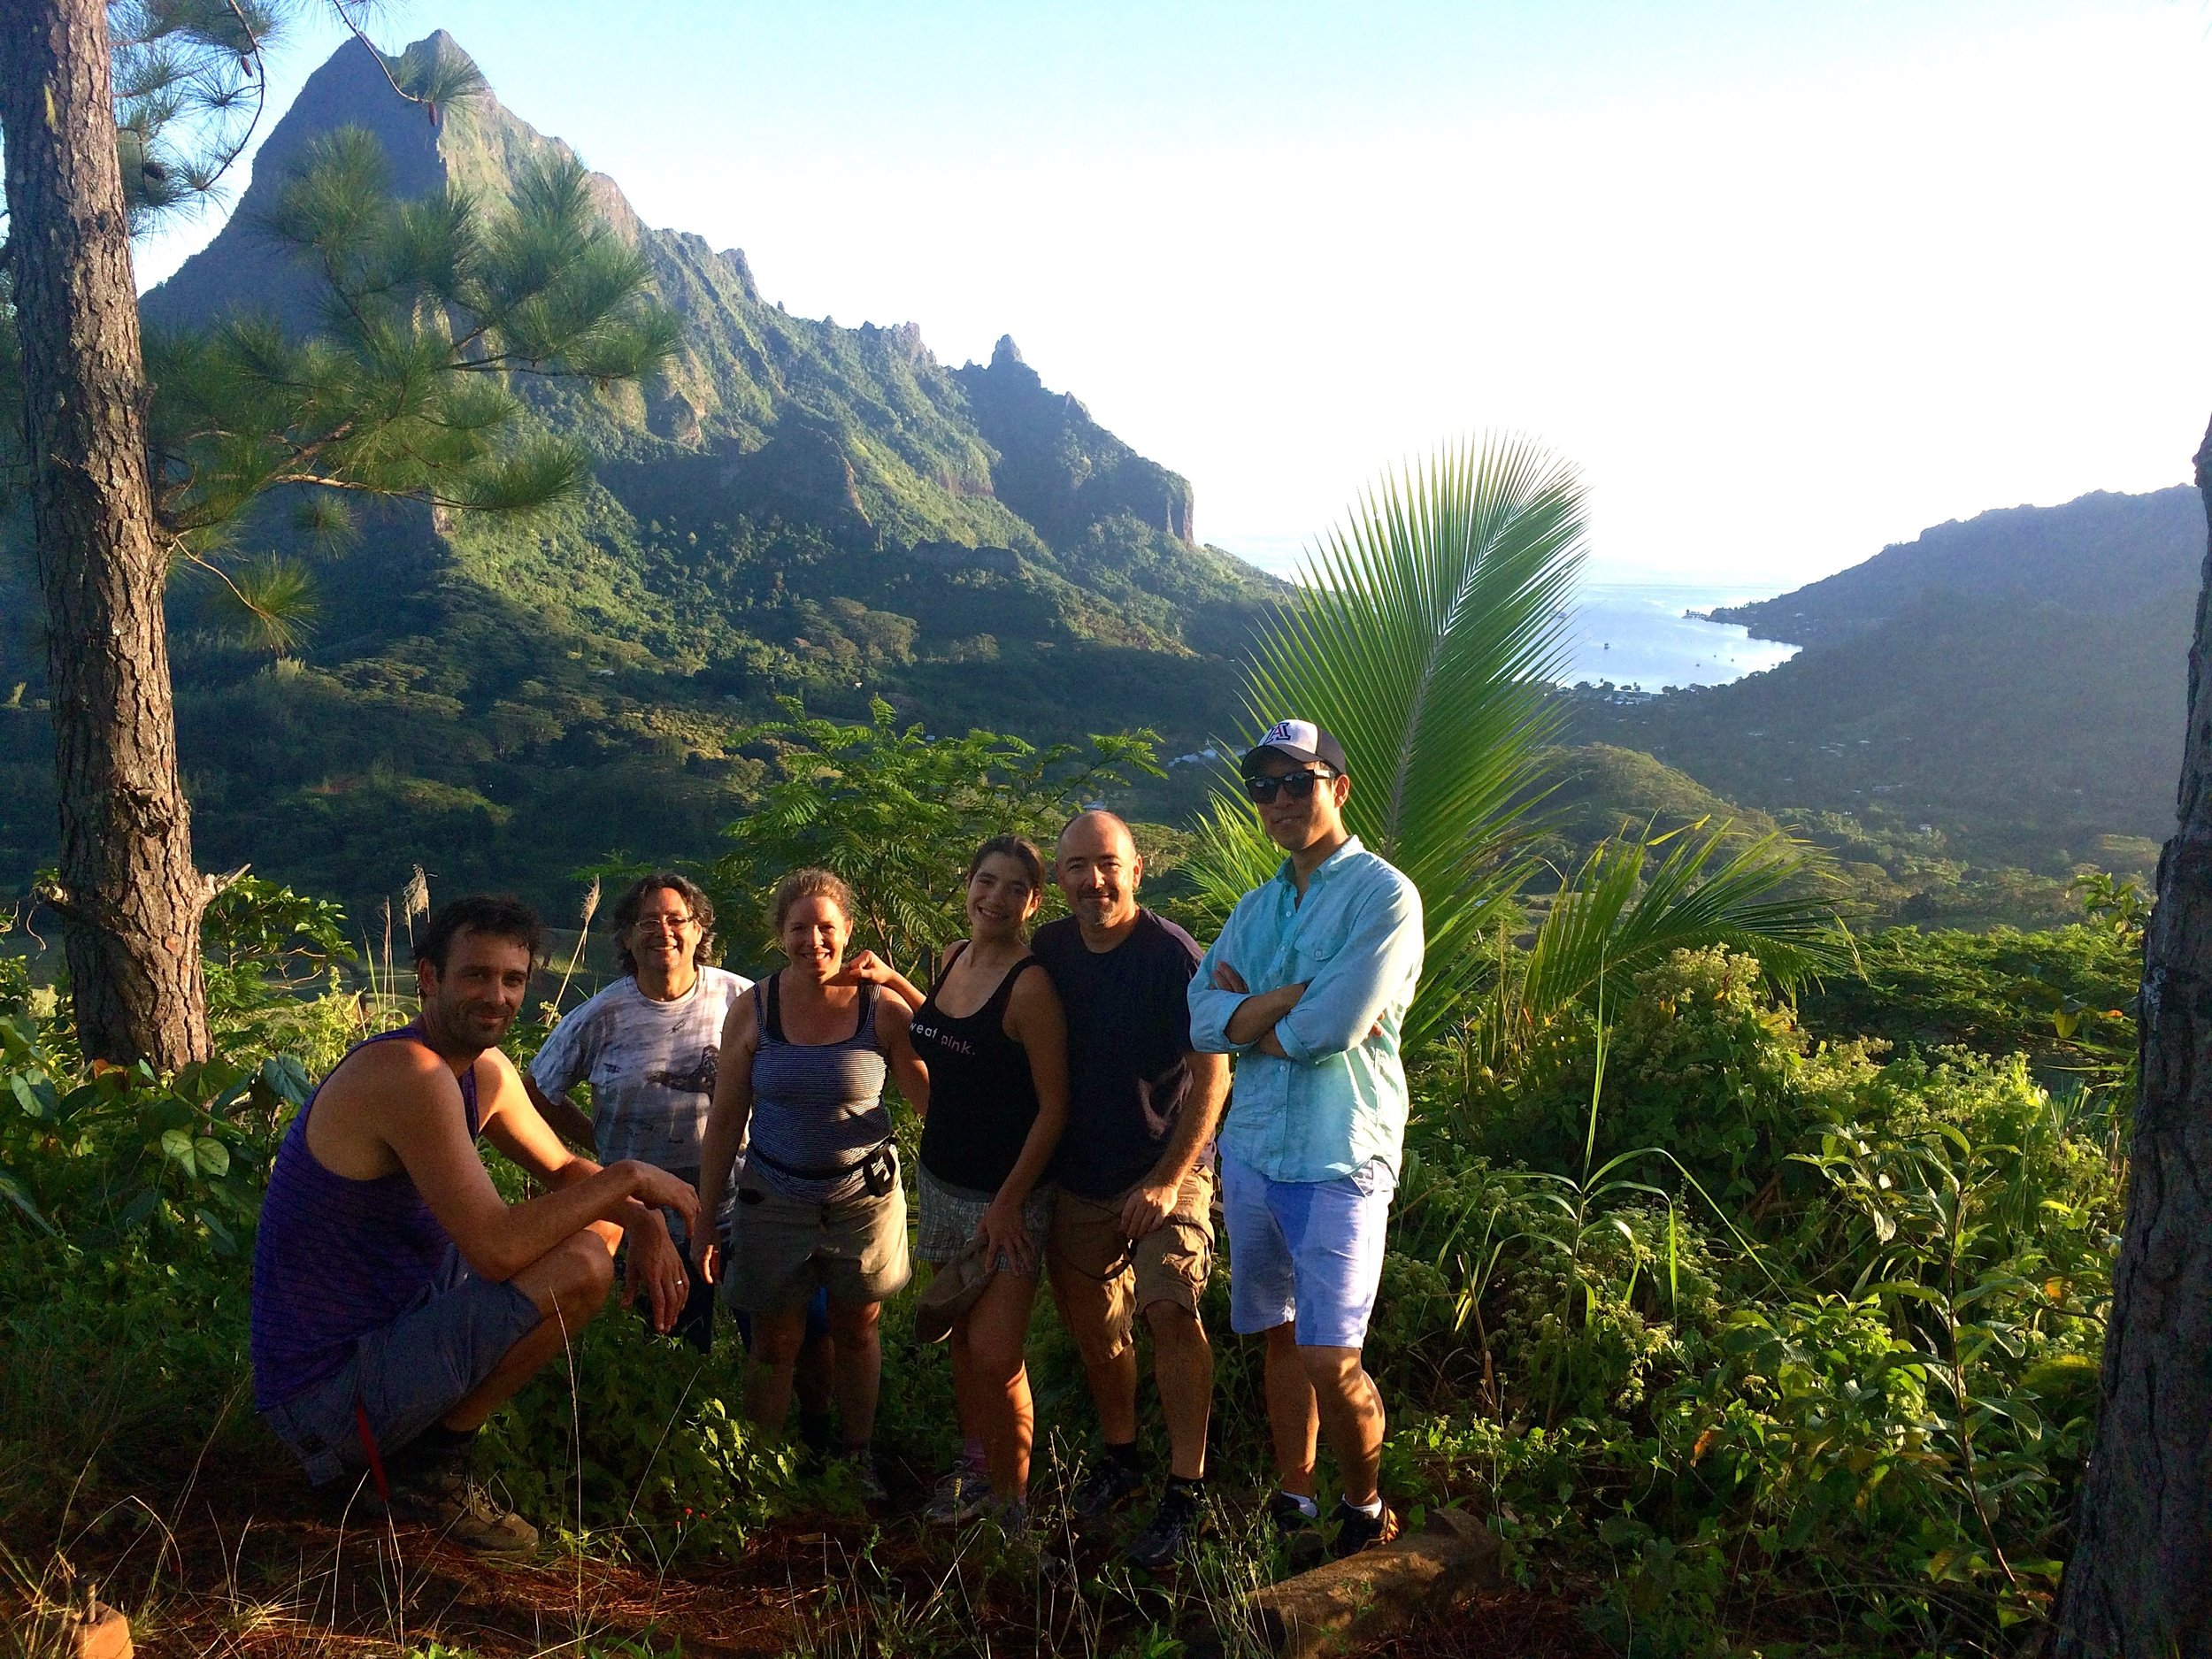 End of our morning hike with the Moorea IDEA science team. Ready for productive work day.